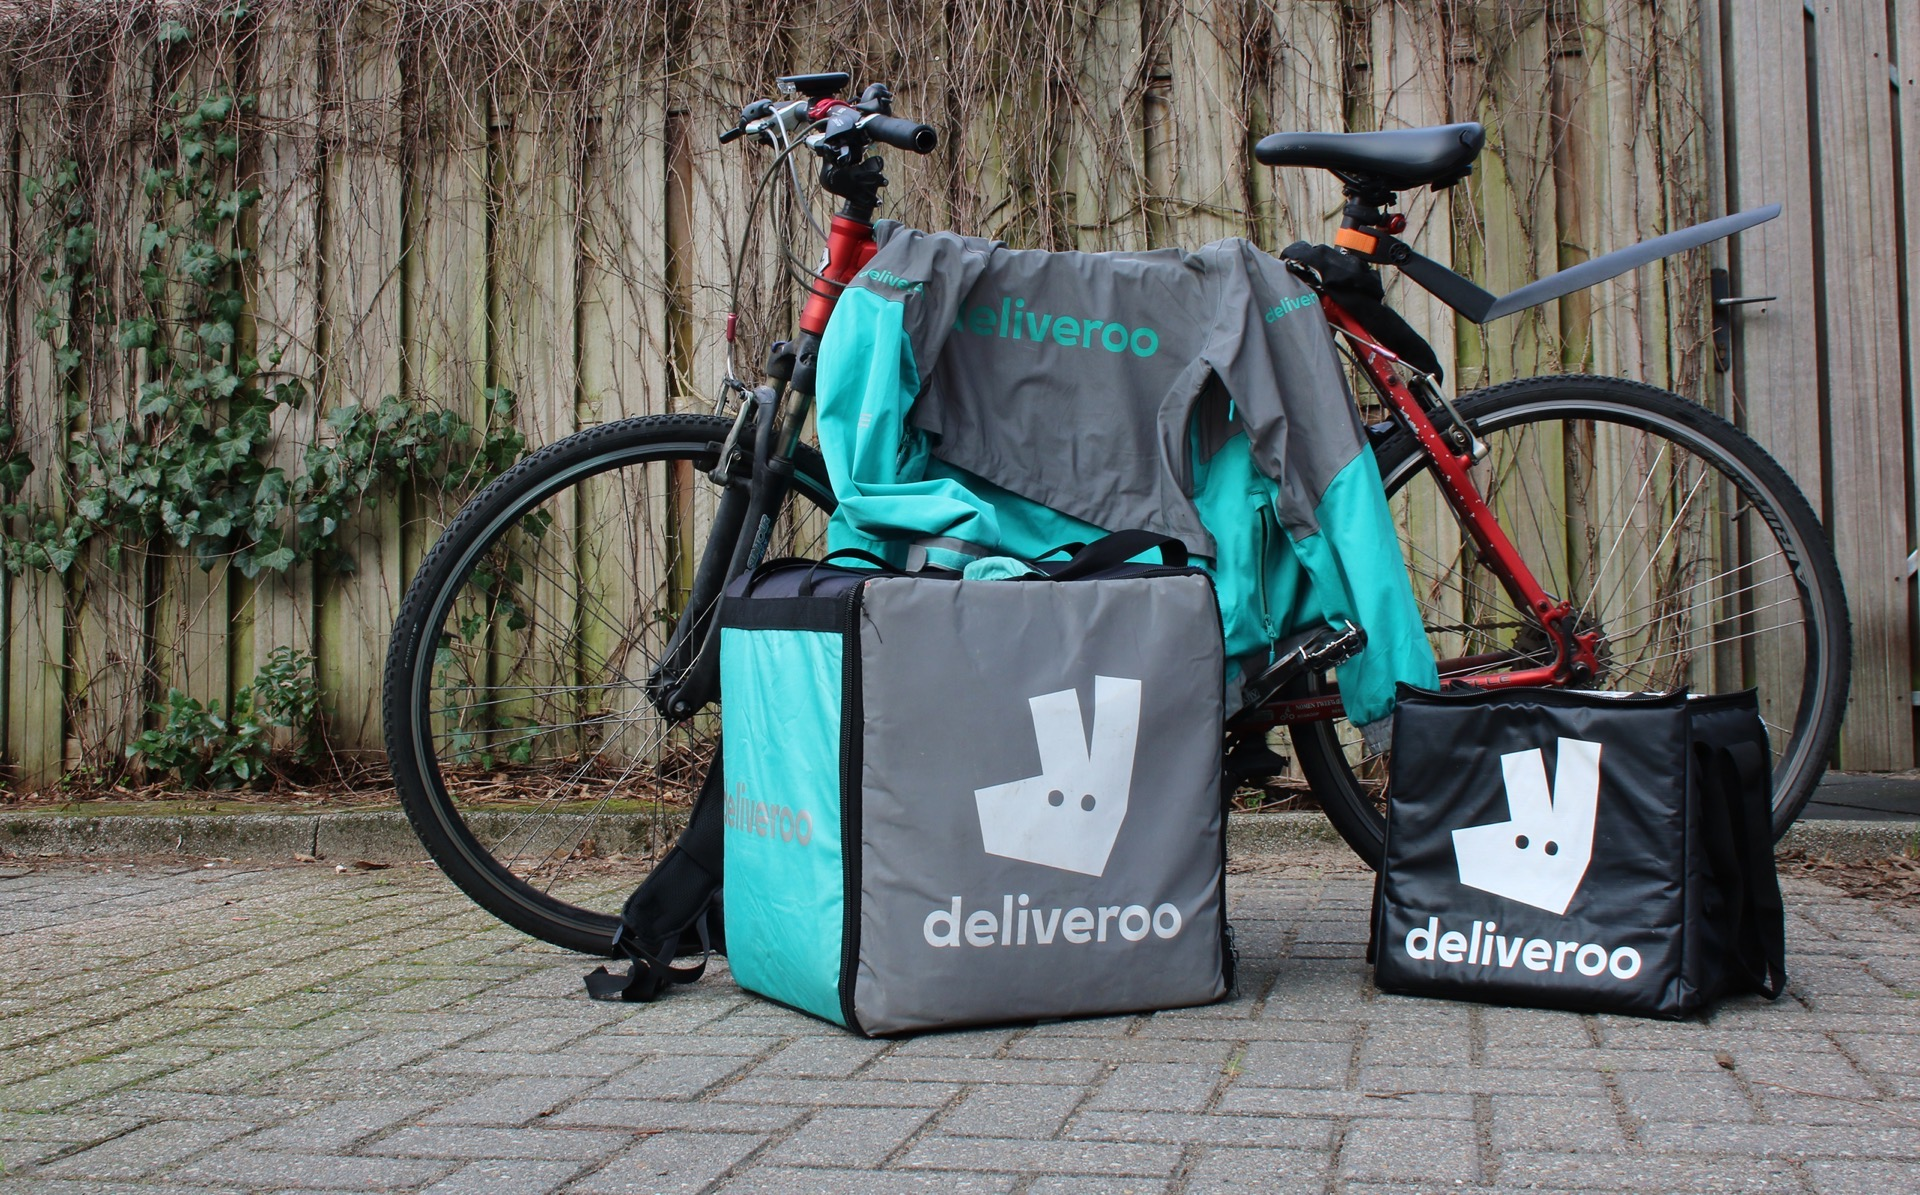 Deliveroo IPO fiasco: The markets have spoken on the gig economy